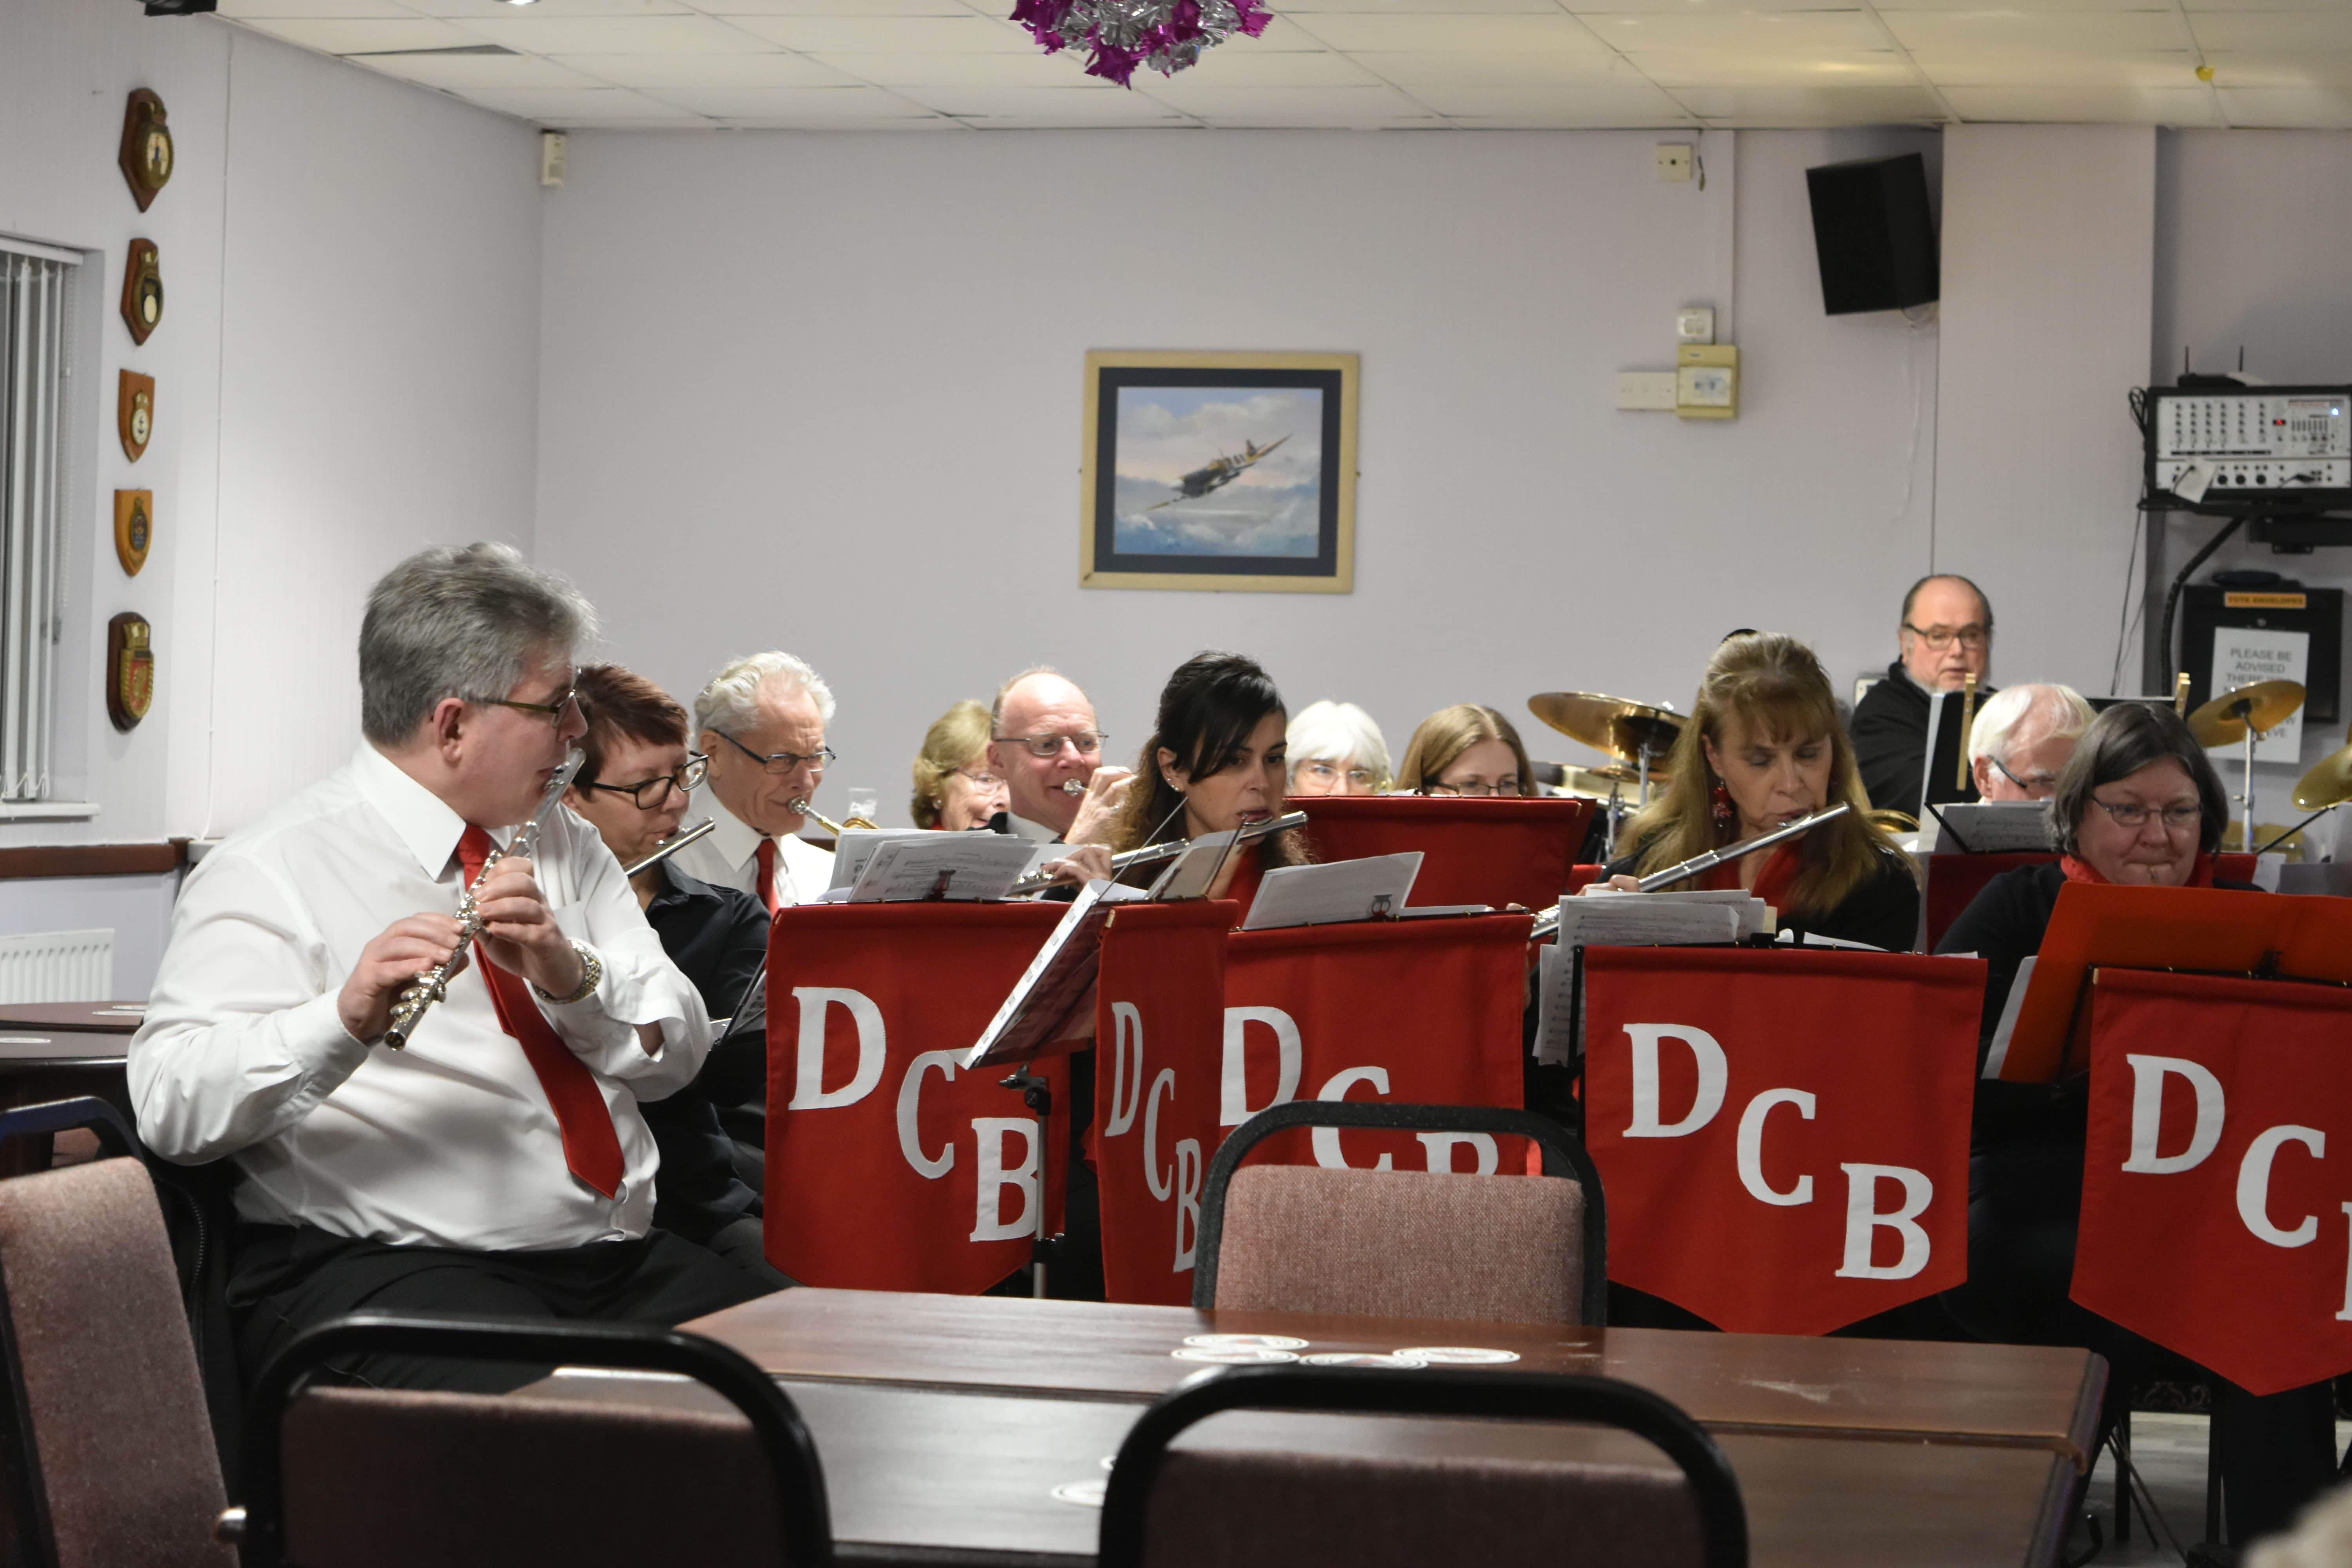 DCB Christmas Concert at the Glentworth Club